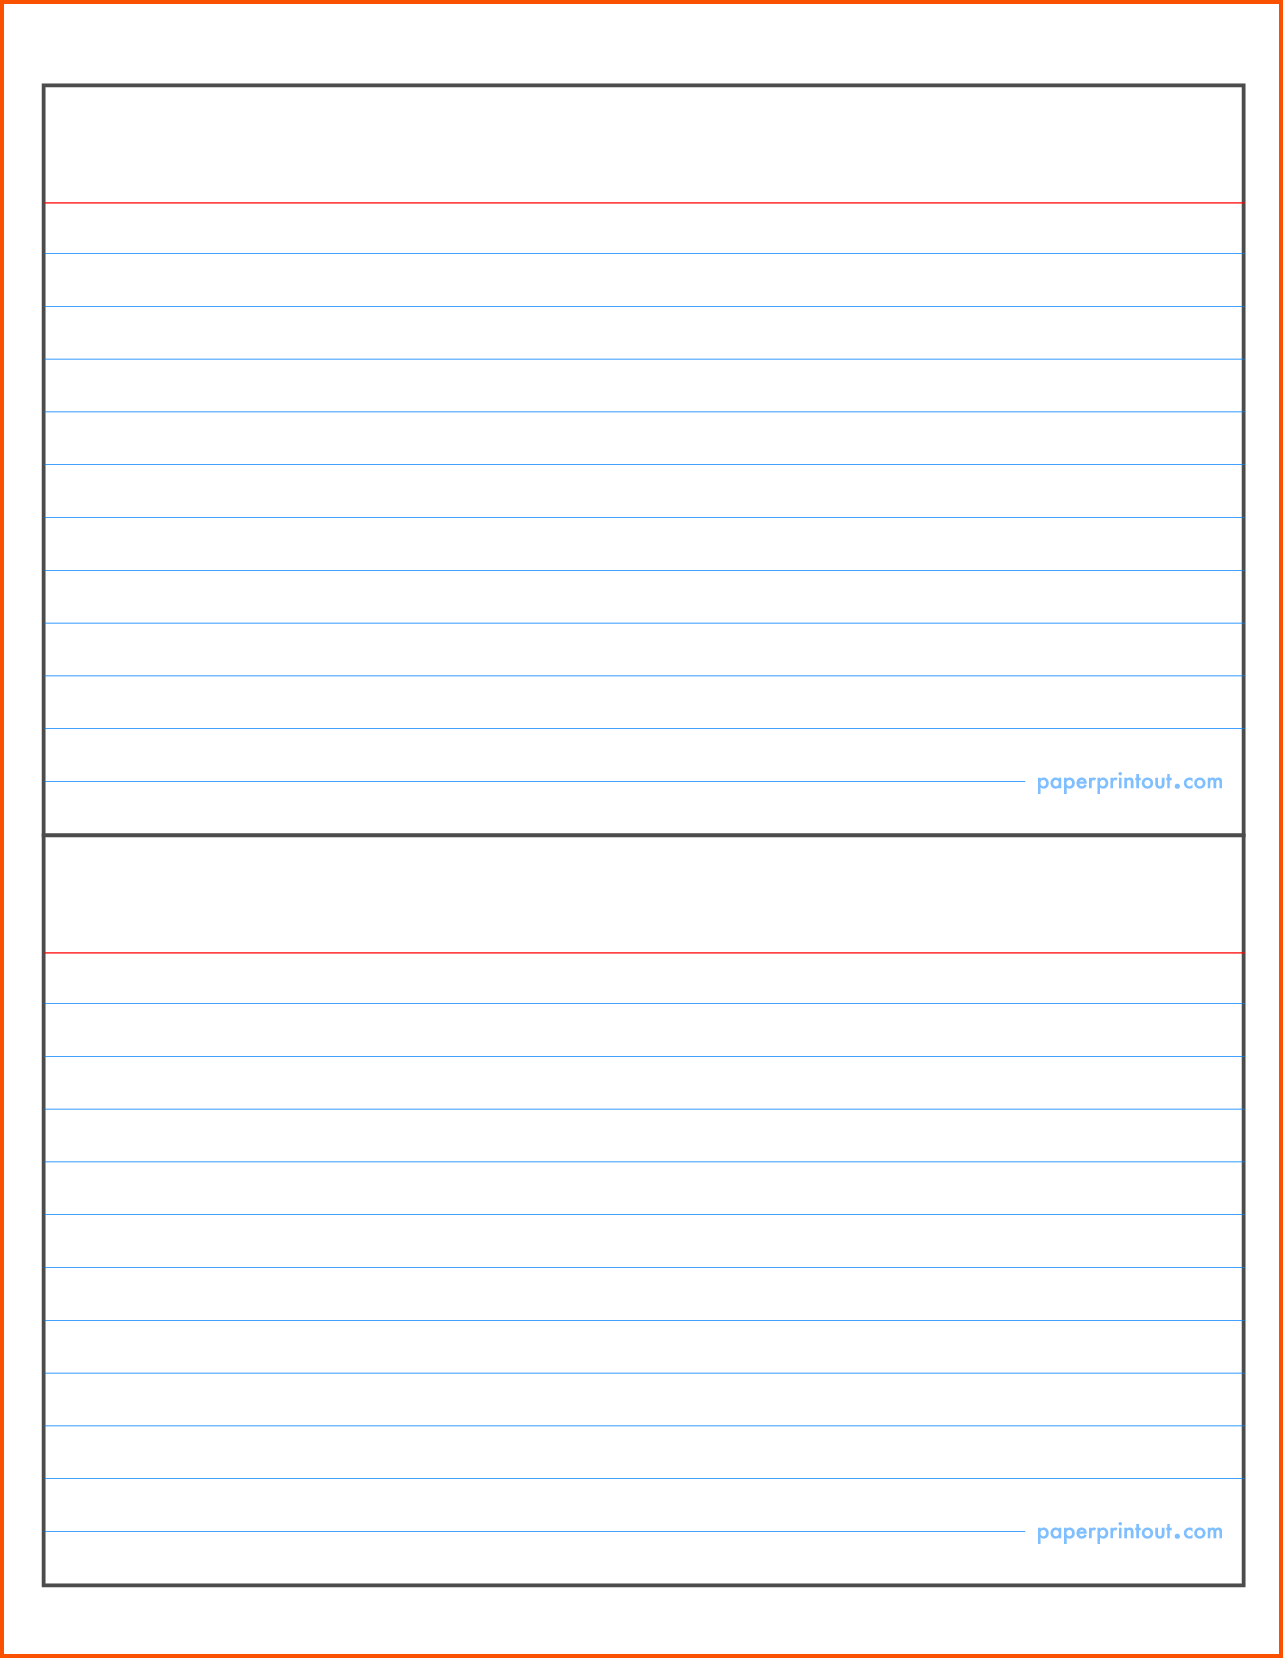 86 Create 3 X 5 Card Template Word in Photoshop for 3 X 5 Card Template Word